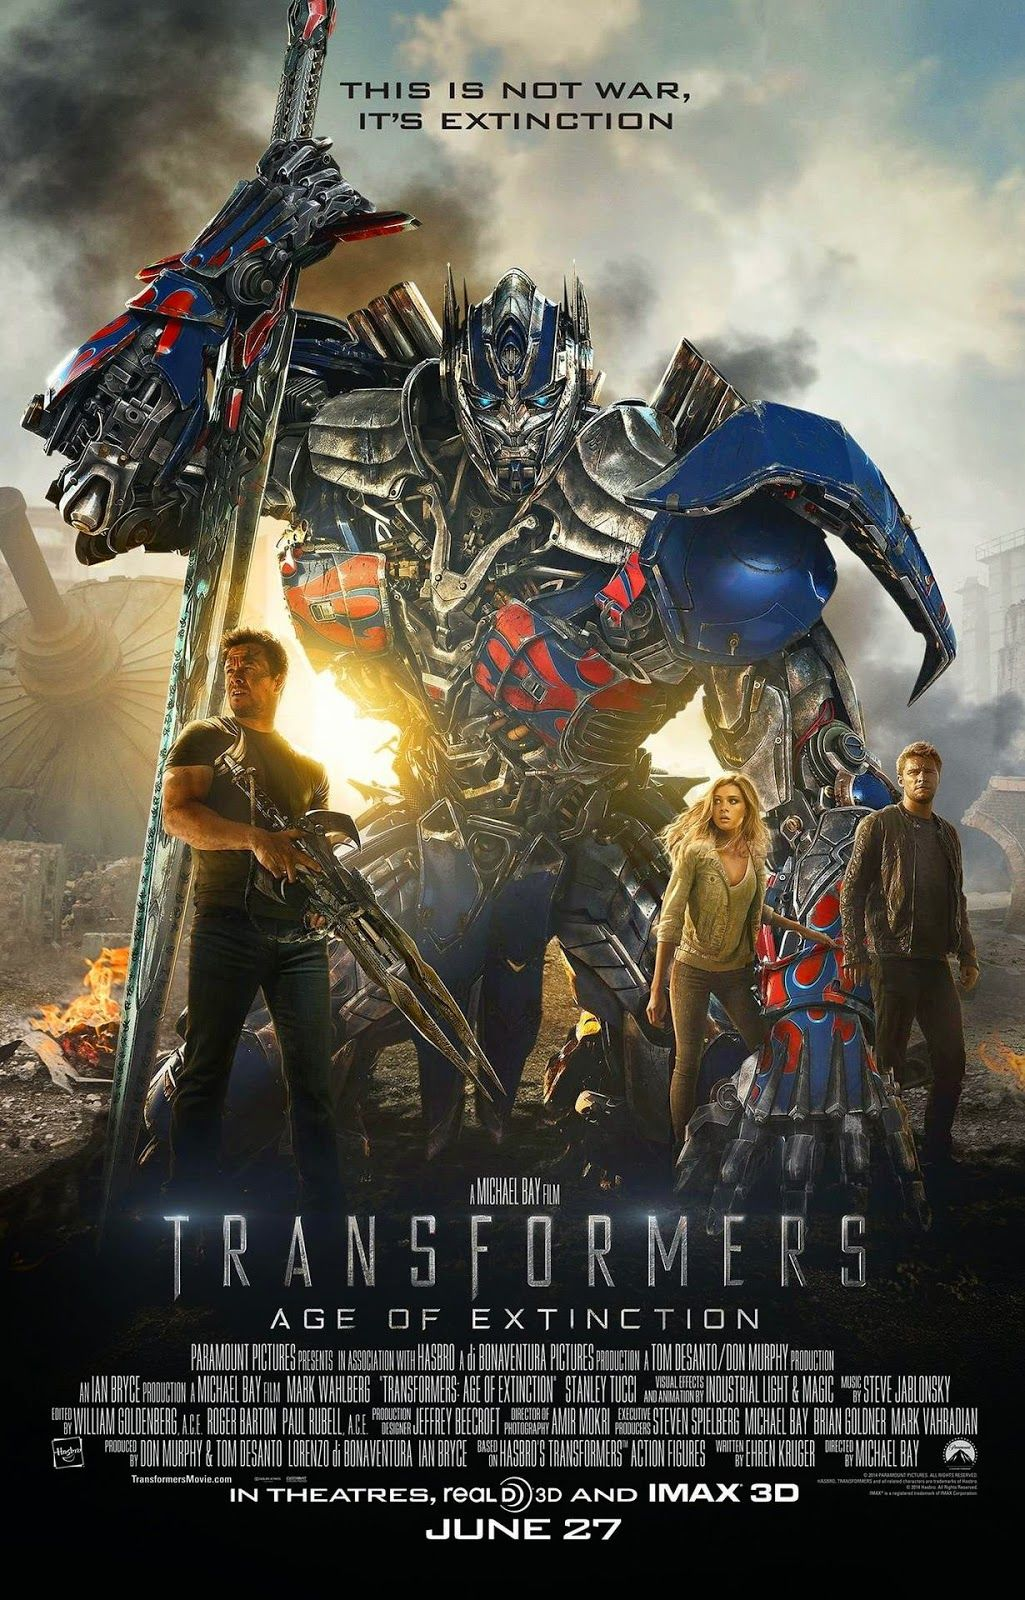 transformers age of extinction 2014 full 1080p hd is the latest